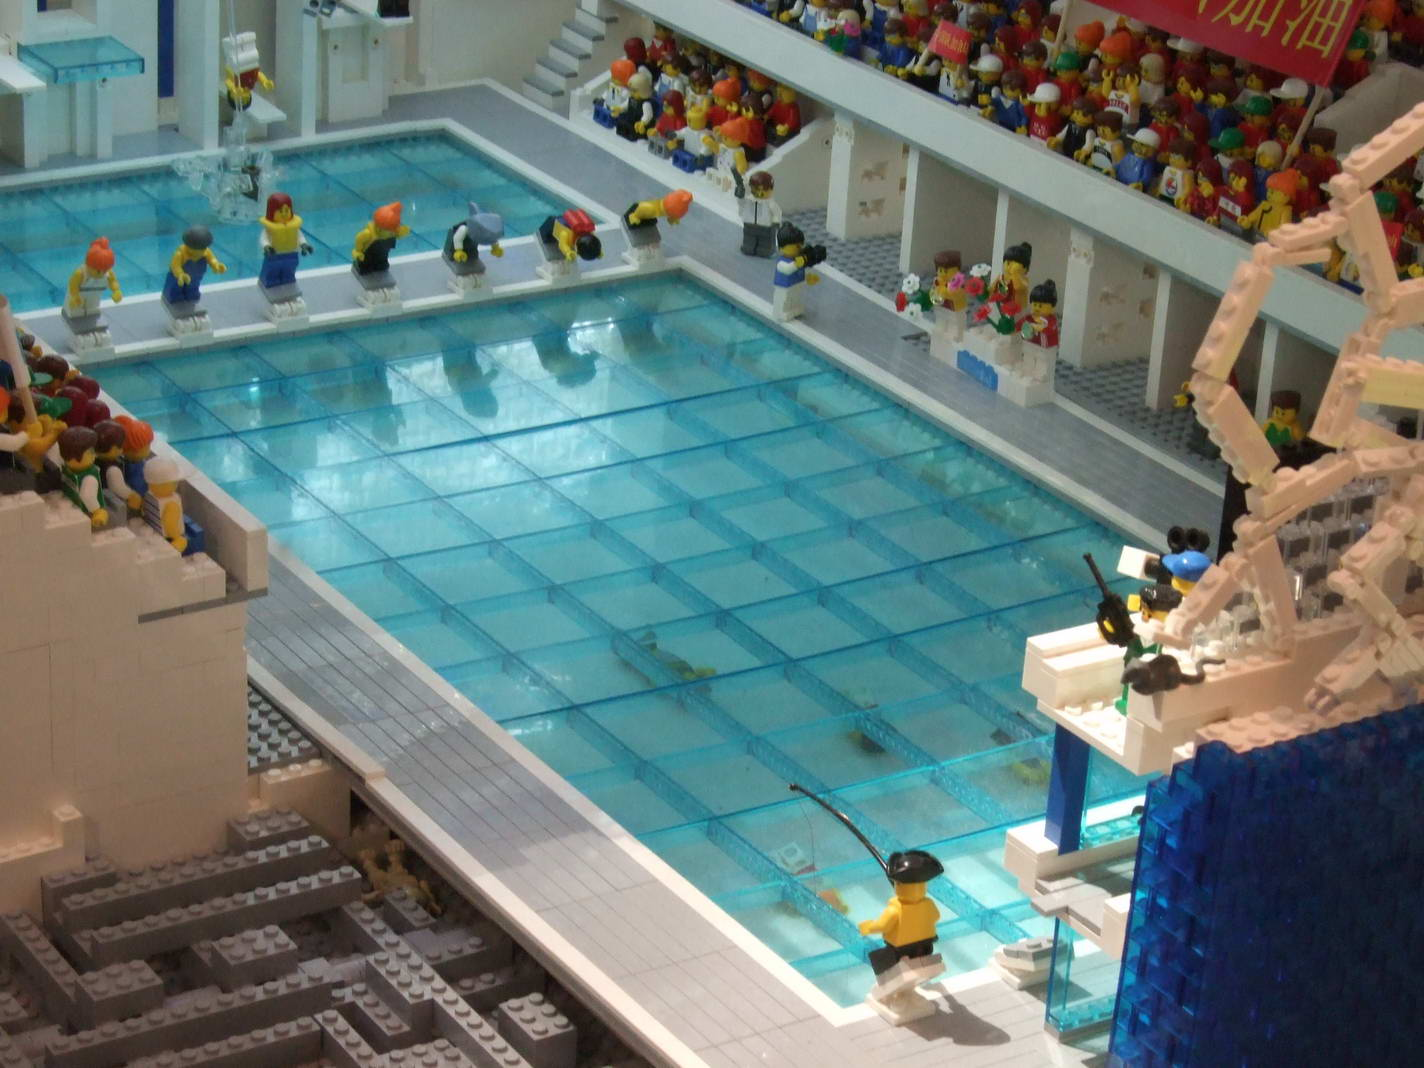 Spotlight beijing architecture lego for Swimming pool design jobs